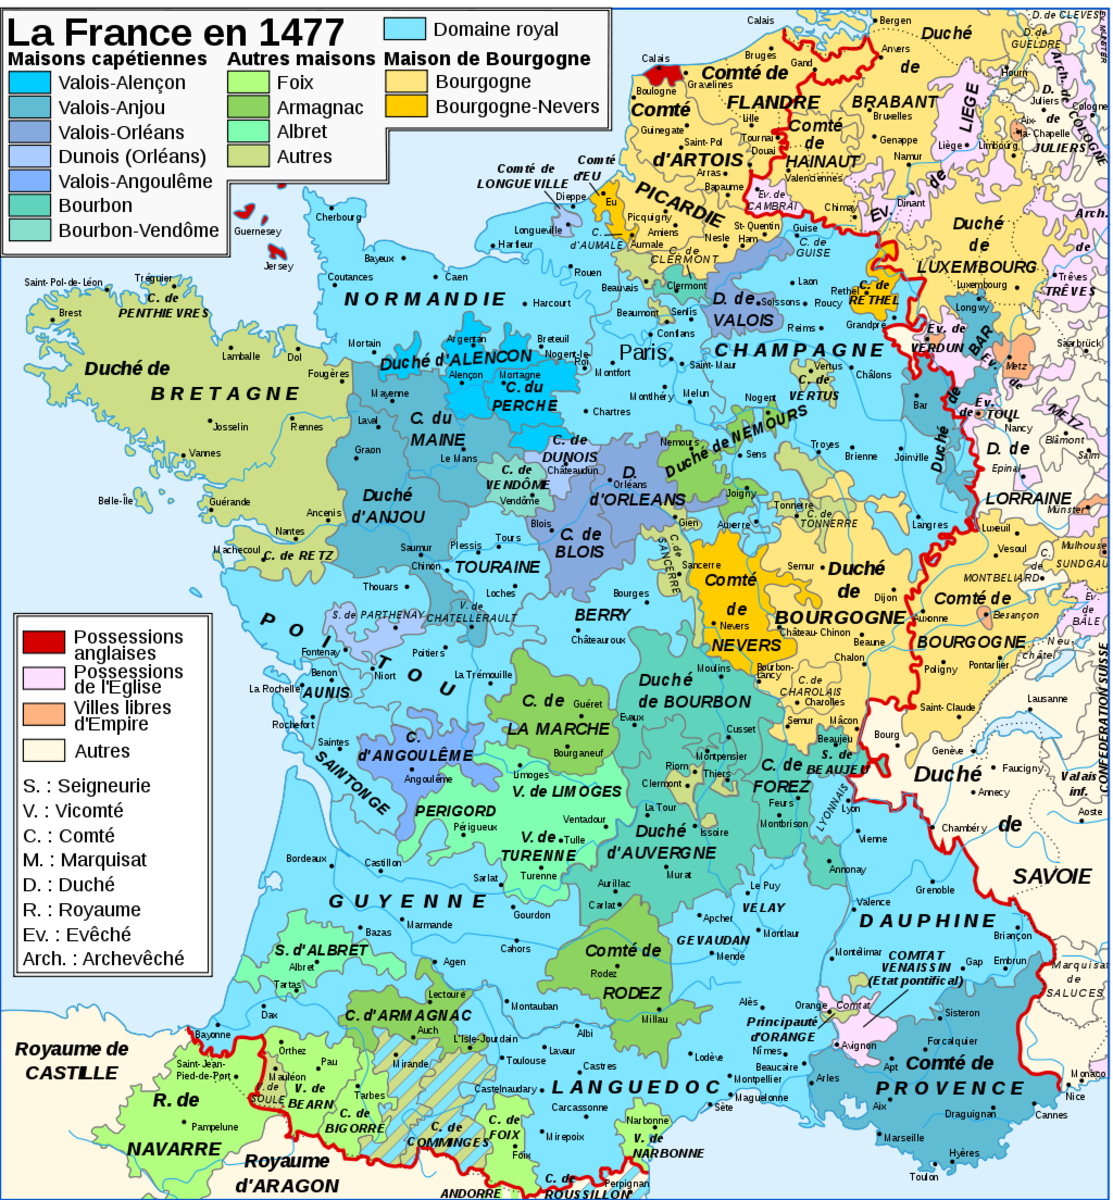 In many ways, France wasn't much changed from the middle ages in the way it was governed and the way it existed, although there were some crucial changes.